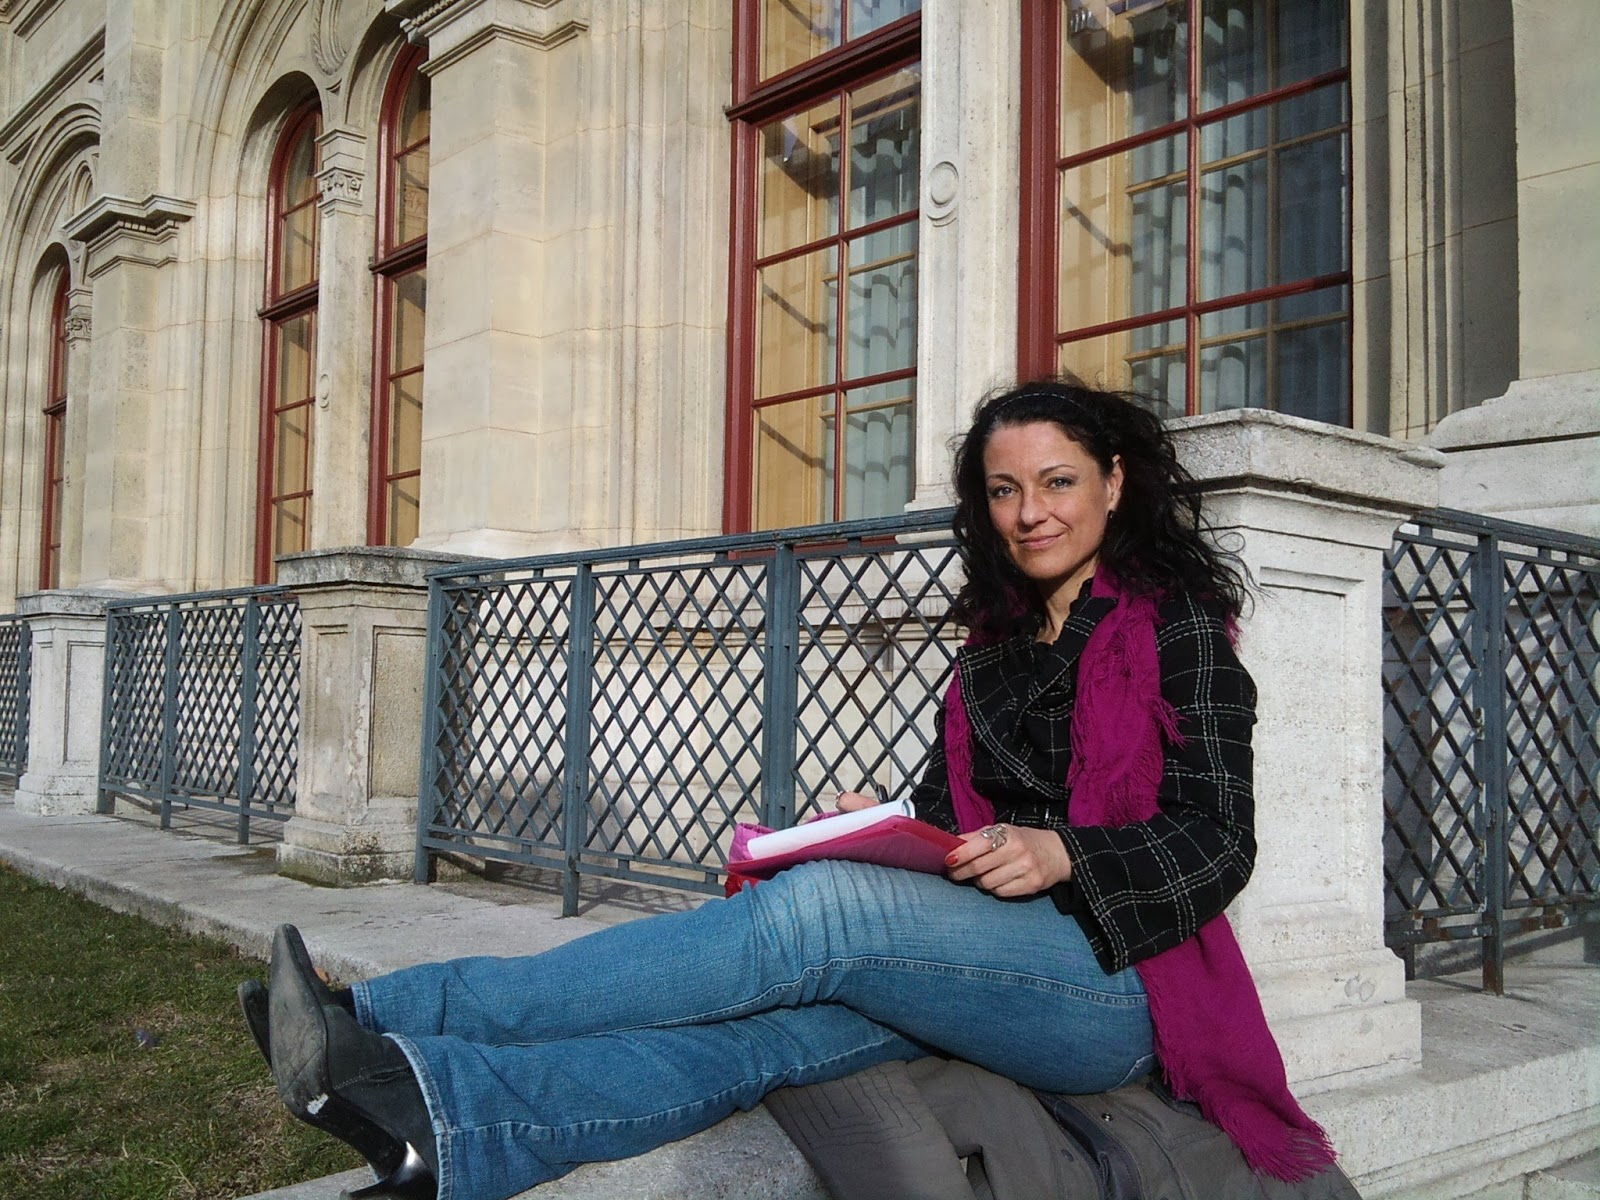 Andrea Gerak studying at the corener of Vienna Opera House